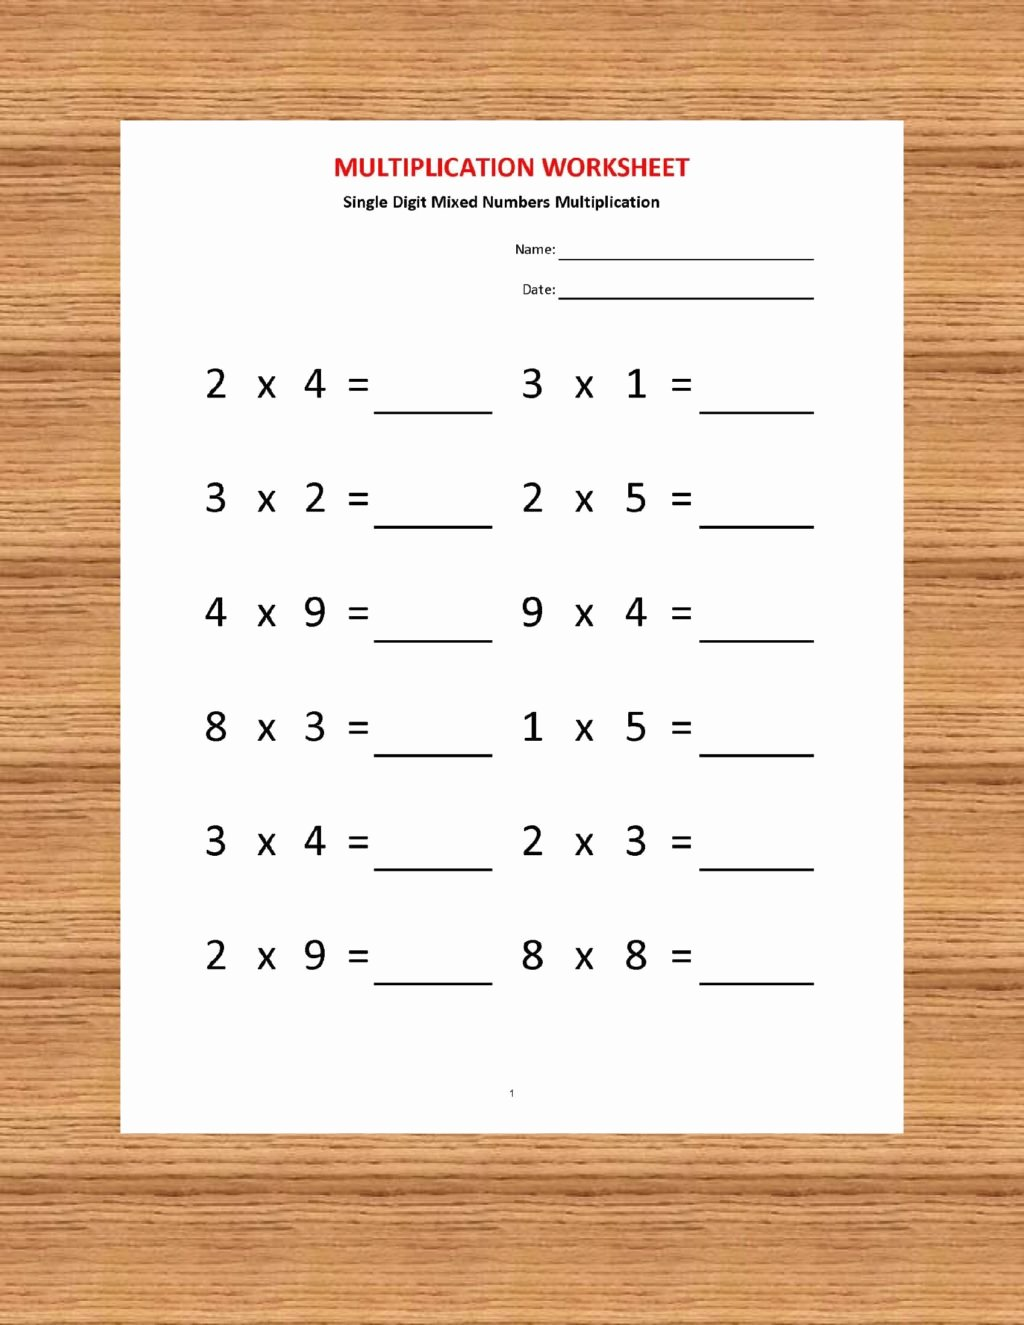 2nd Grade Multiplication Worksheets with Pictures Inspirational Worksheet 2nd Gradetiplication Worksheets Printable